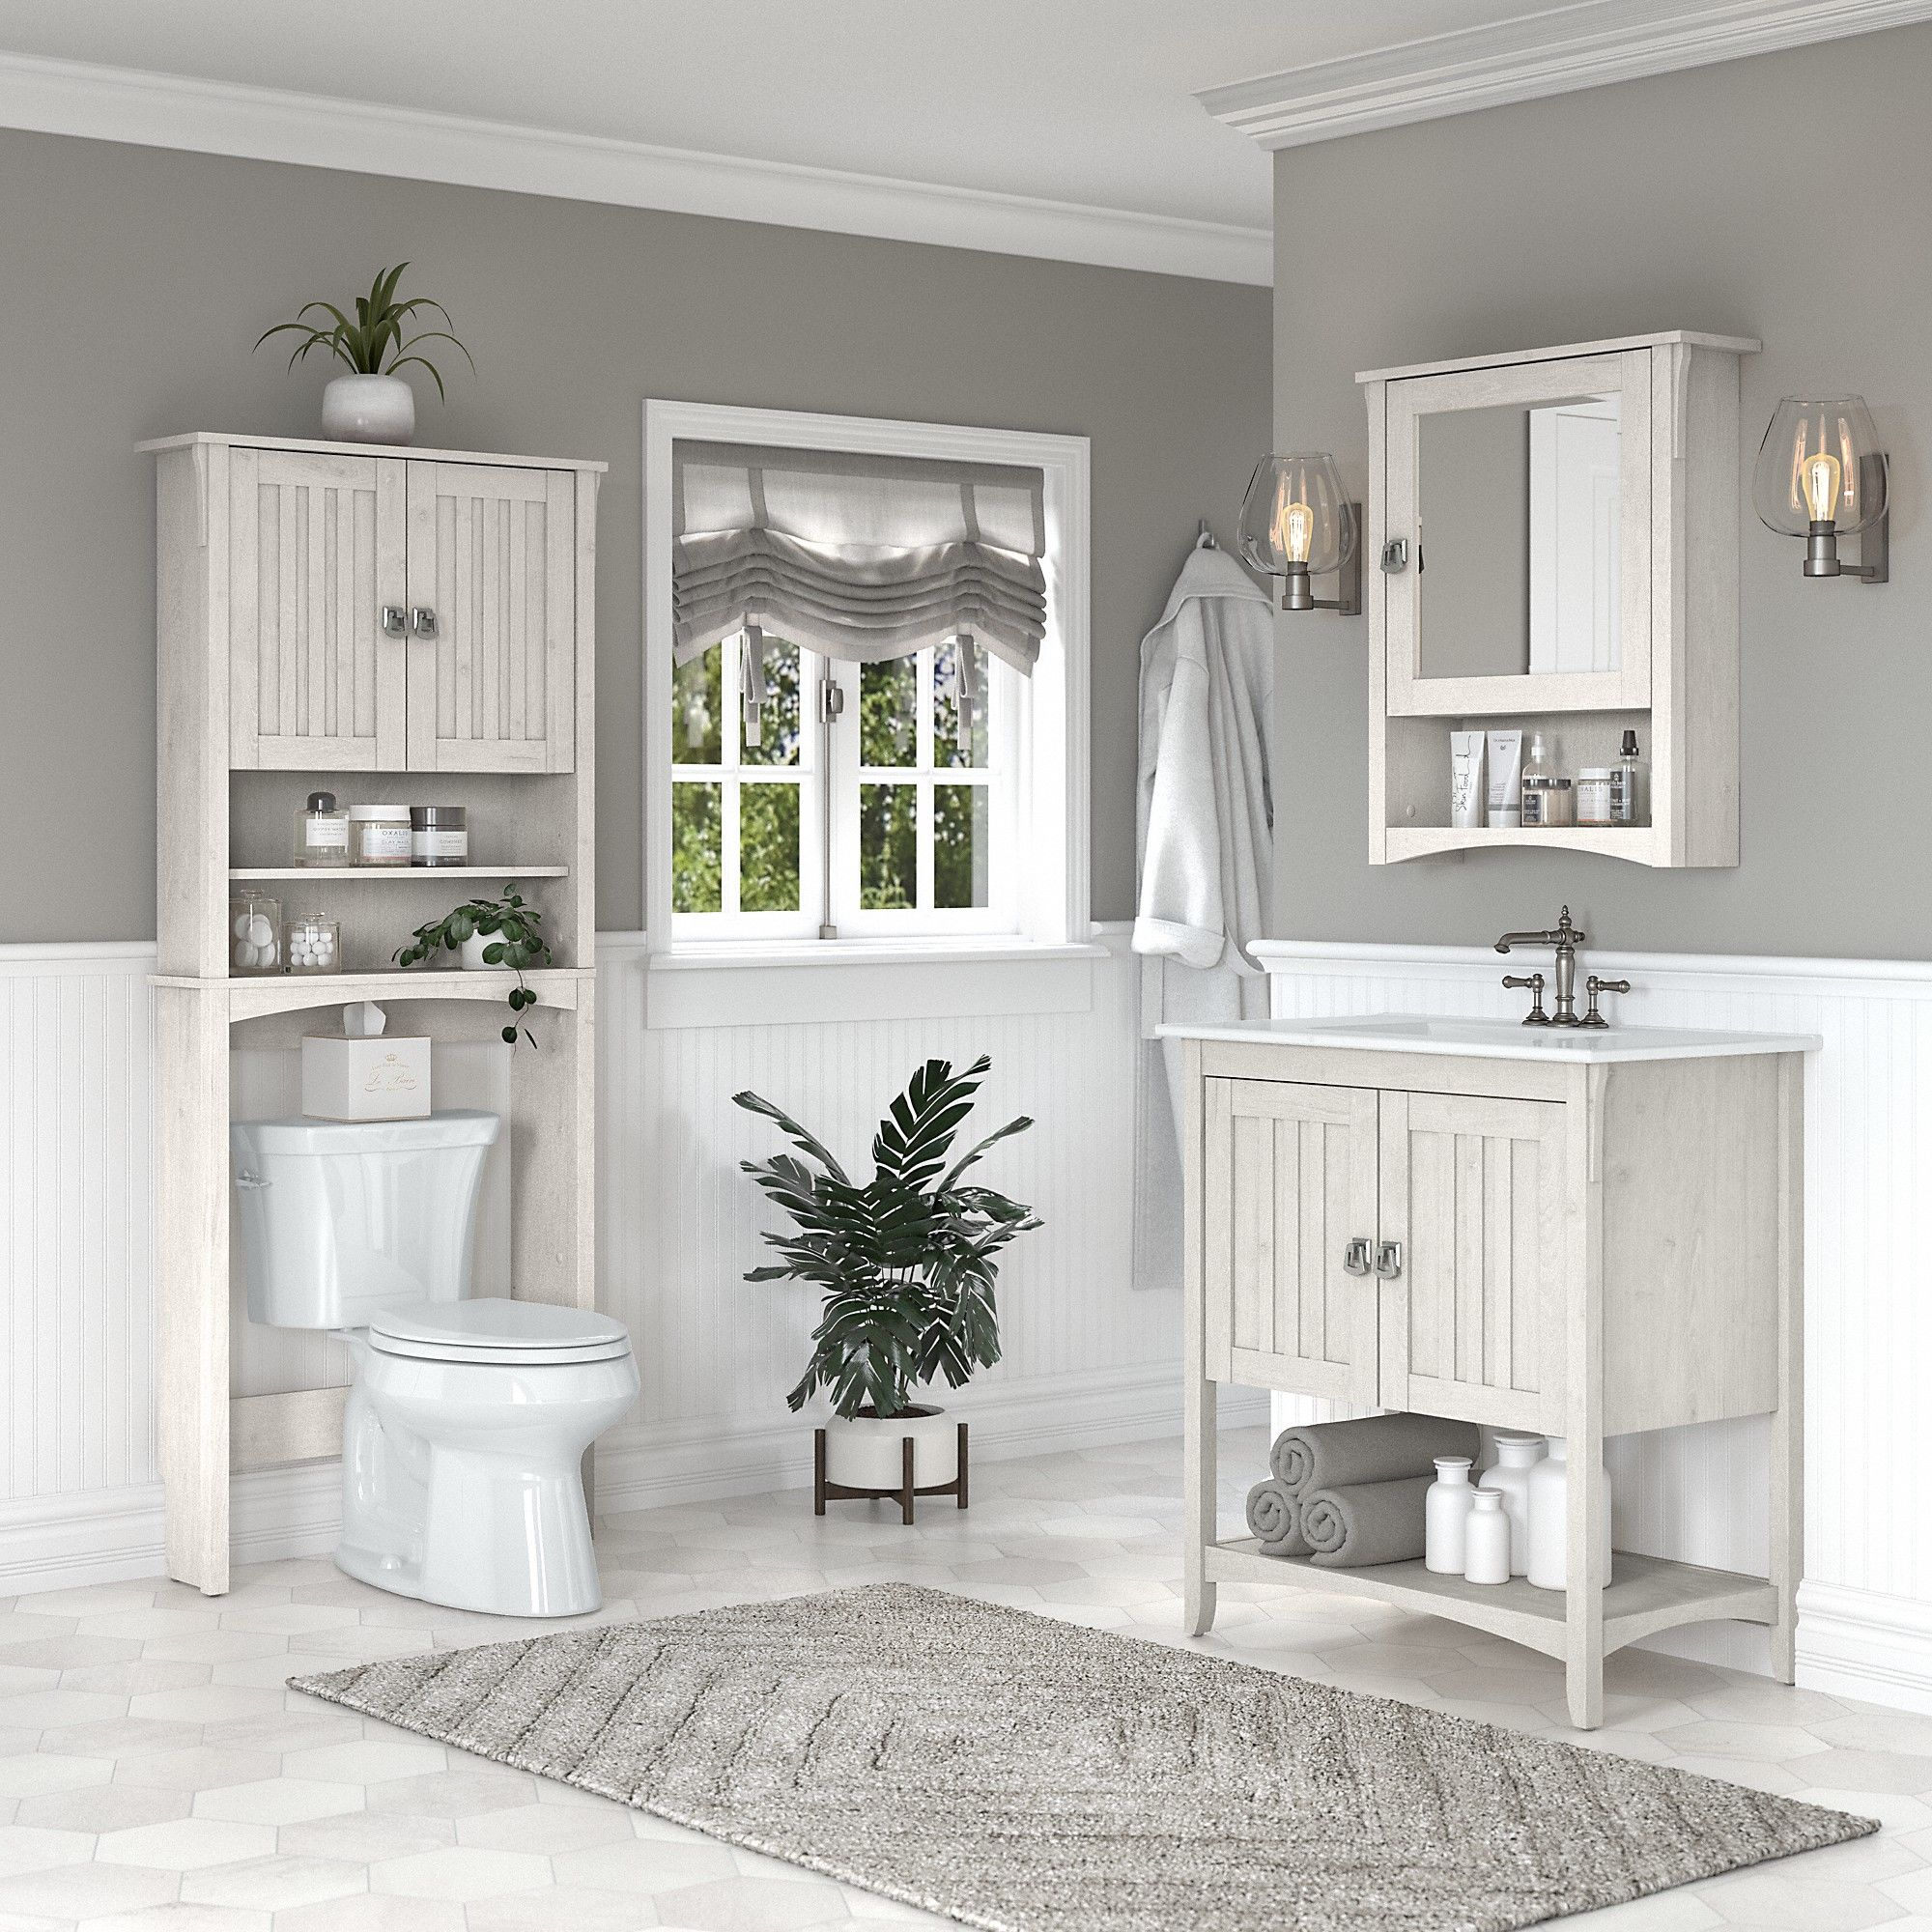 Bush Furniture Salinas 32w Bathroom Vanity Sink With Mirror And Over The Toilet Storage Cabinet In Linen White Oak